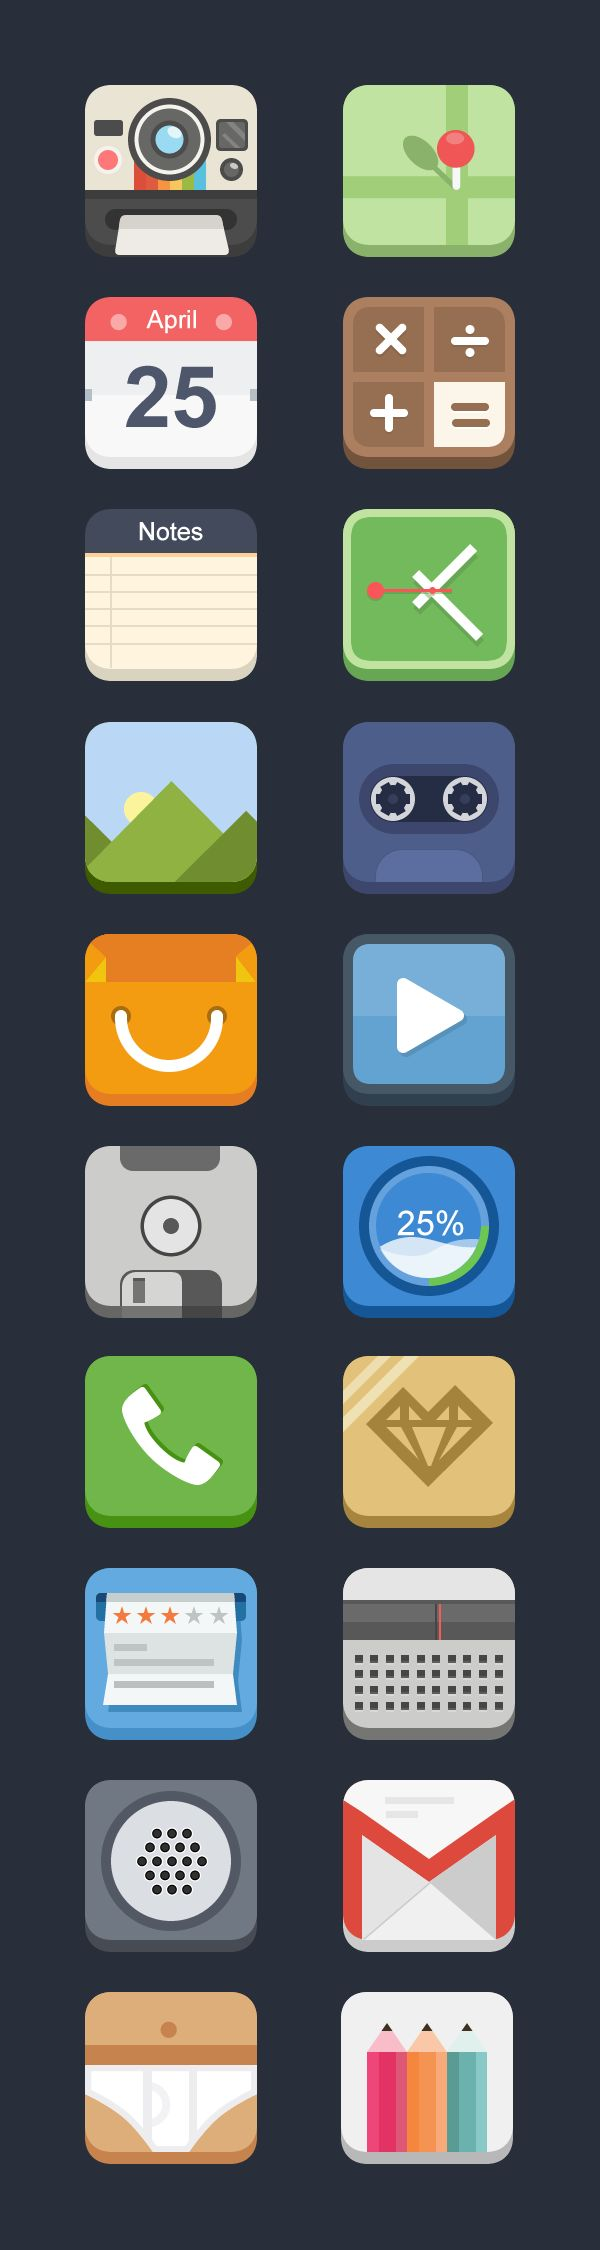 #app #icons #flat #design #ui #inspiration